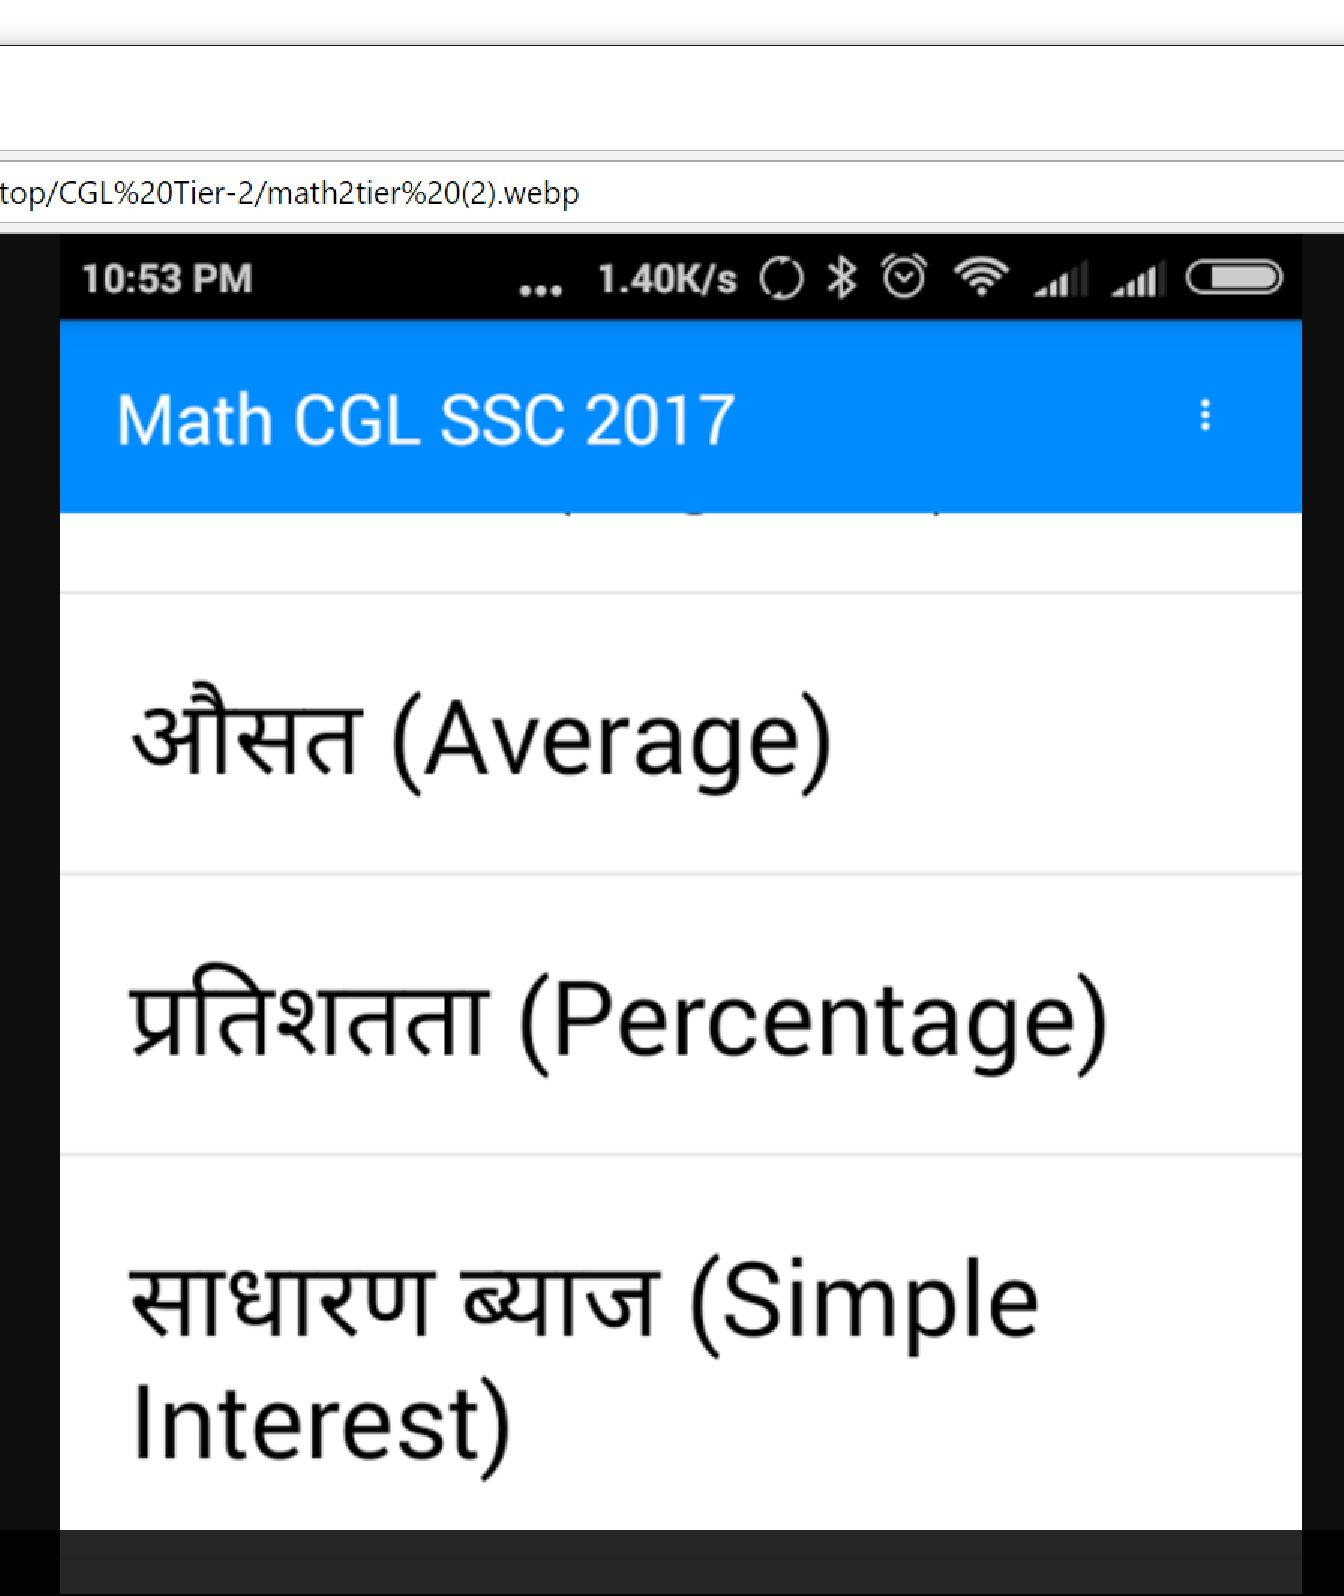 SSC CGL Tier-2 Complete Material 2017 in Hindi for Android